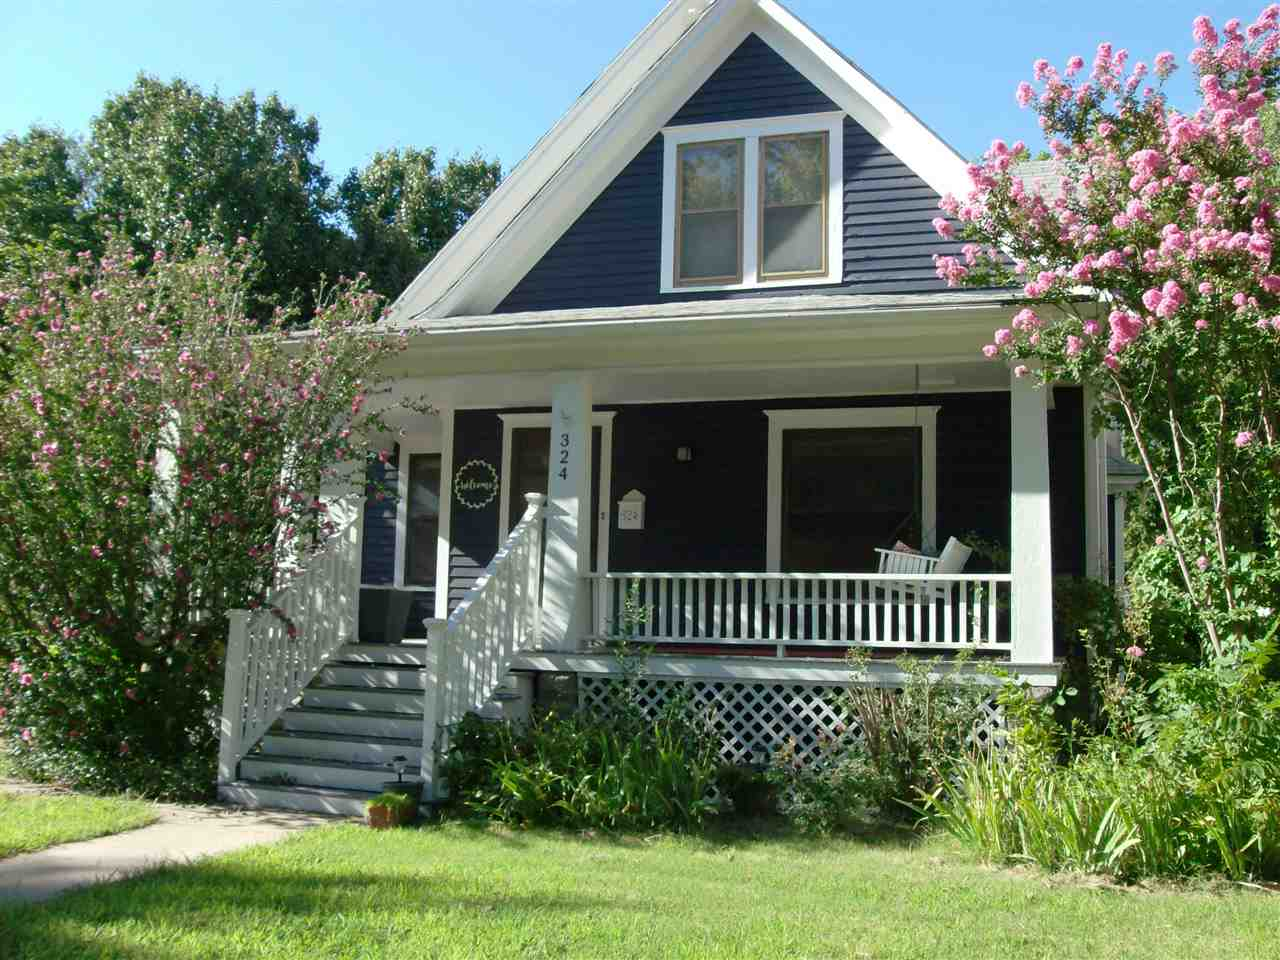 Charming home in Newton's Historical District! Enjoy having coffee on the front porch swing as you prepare for the day. Enter into large living room with wood floors, original woodwork through-out and radiator heat. Dining room is large enough for family gatherings and a sun porch for extra fun.